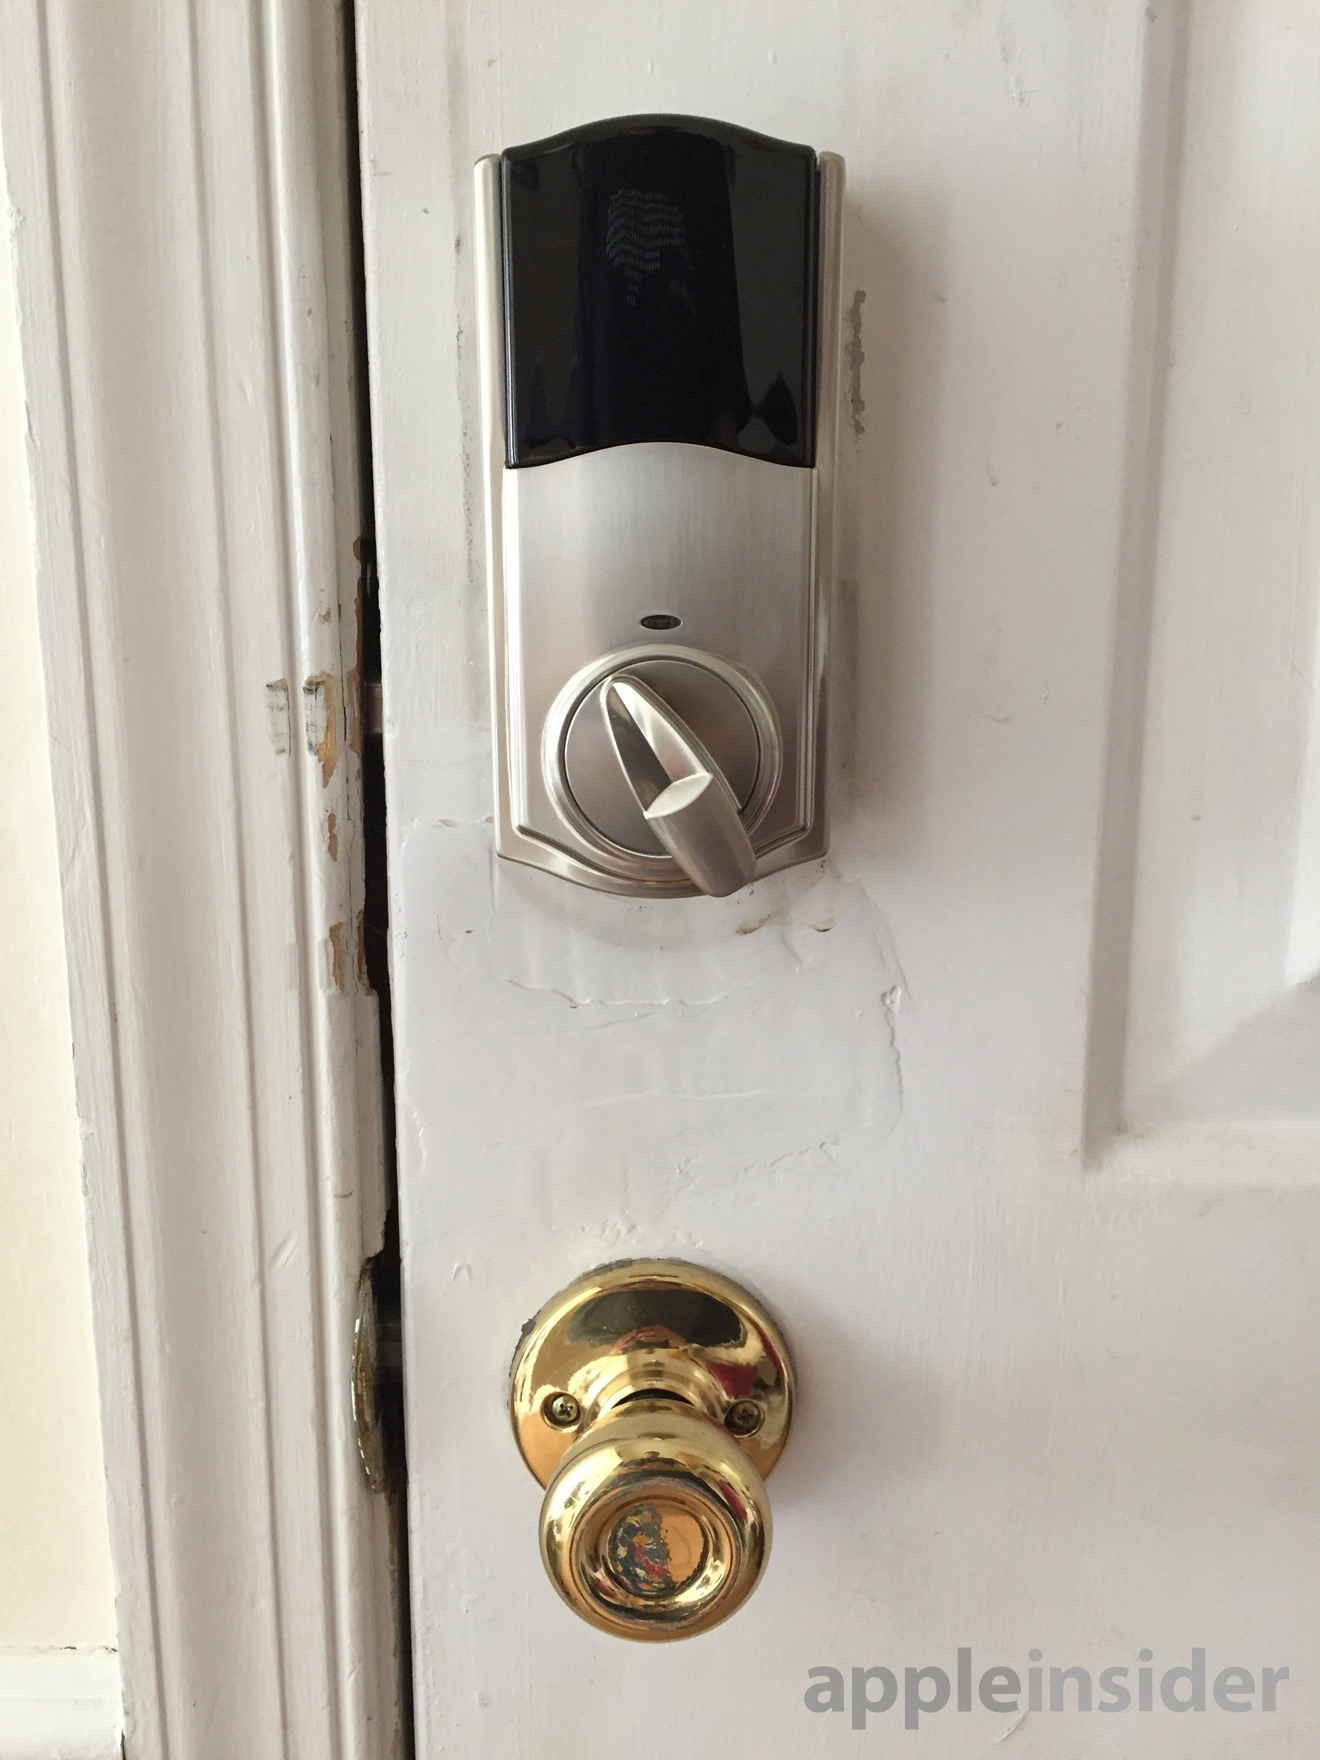 The interior size is much reduced from previous locks, including Kwikset's own Kevo and Kevo2